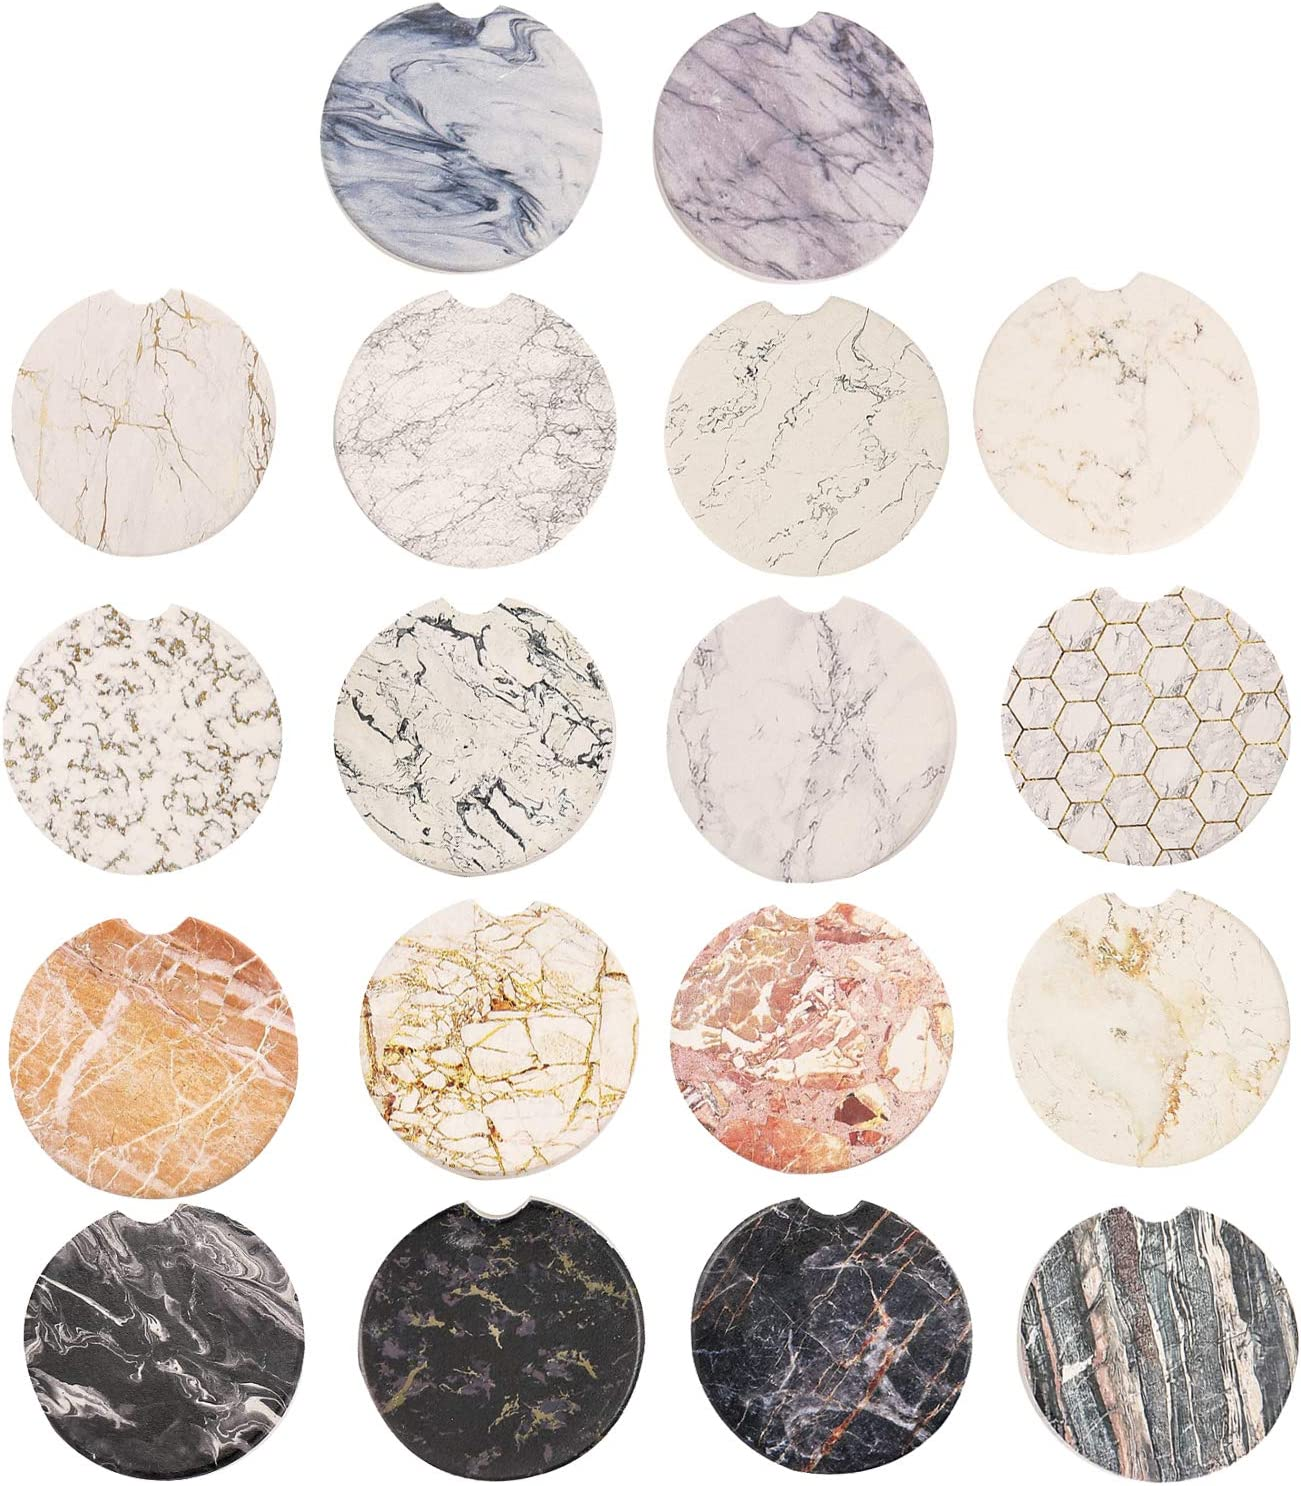 Amazon Com Set Of 18 Absorbent Marble Ceramic Car Coasters For Cup Holder With A Finger Notch For Easy Removal Of Auto Cup Holder Stone Coaster Best Accessory Keep Vehicle Free From Cold